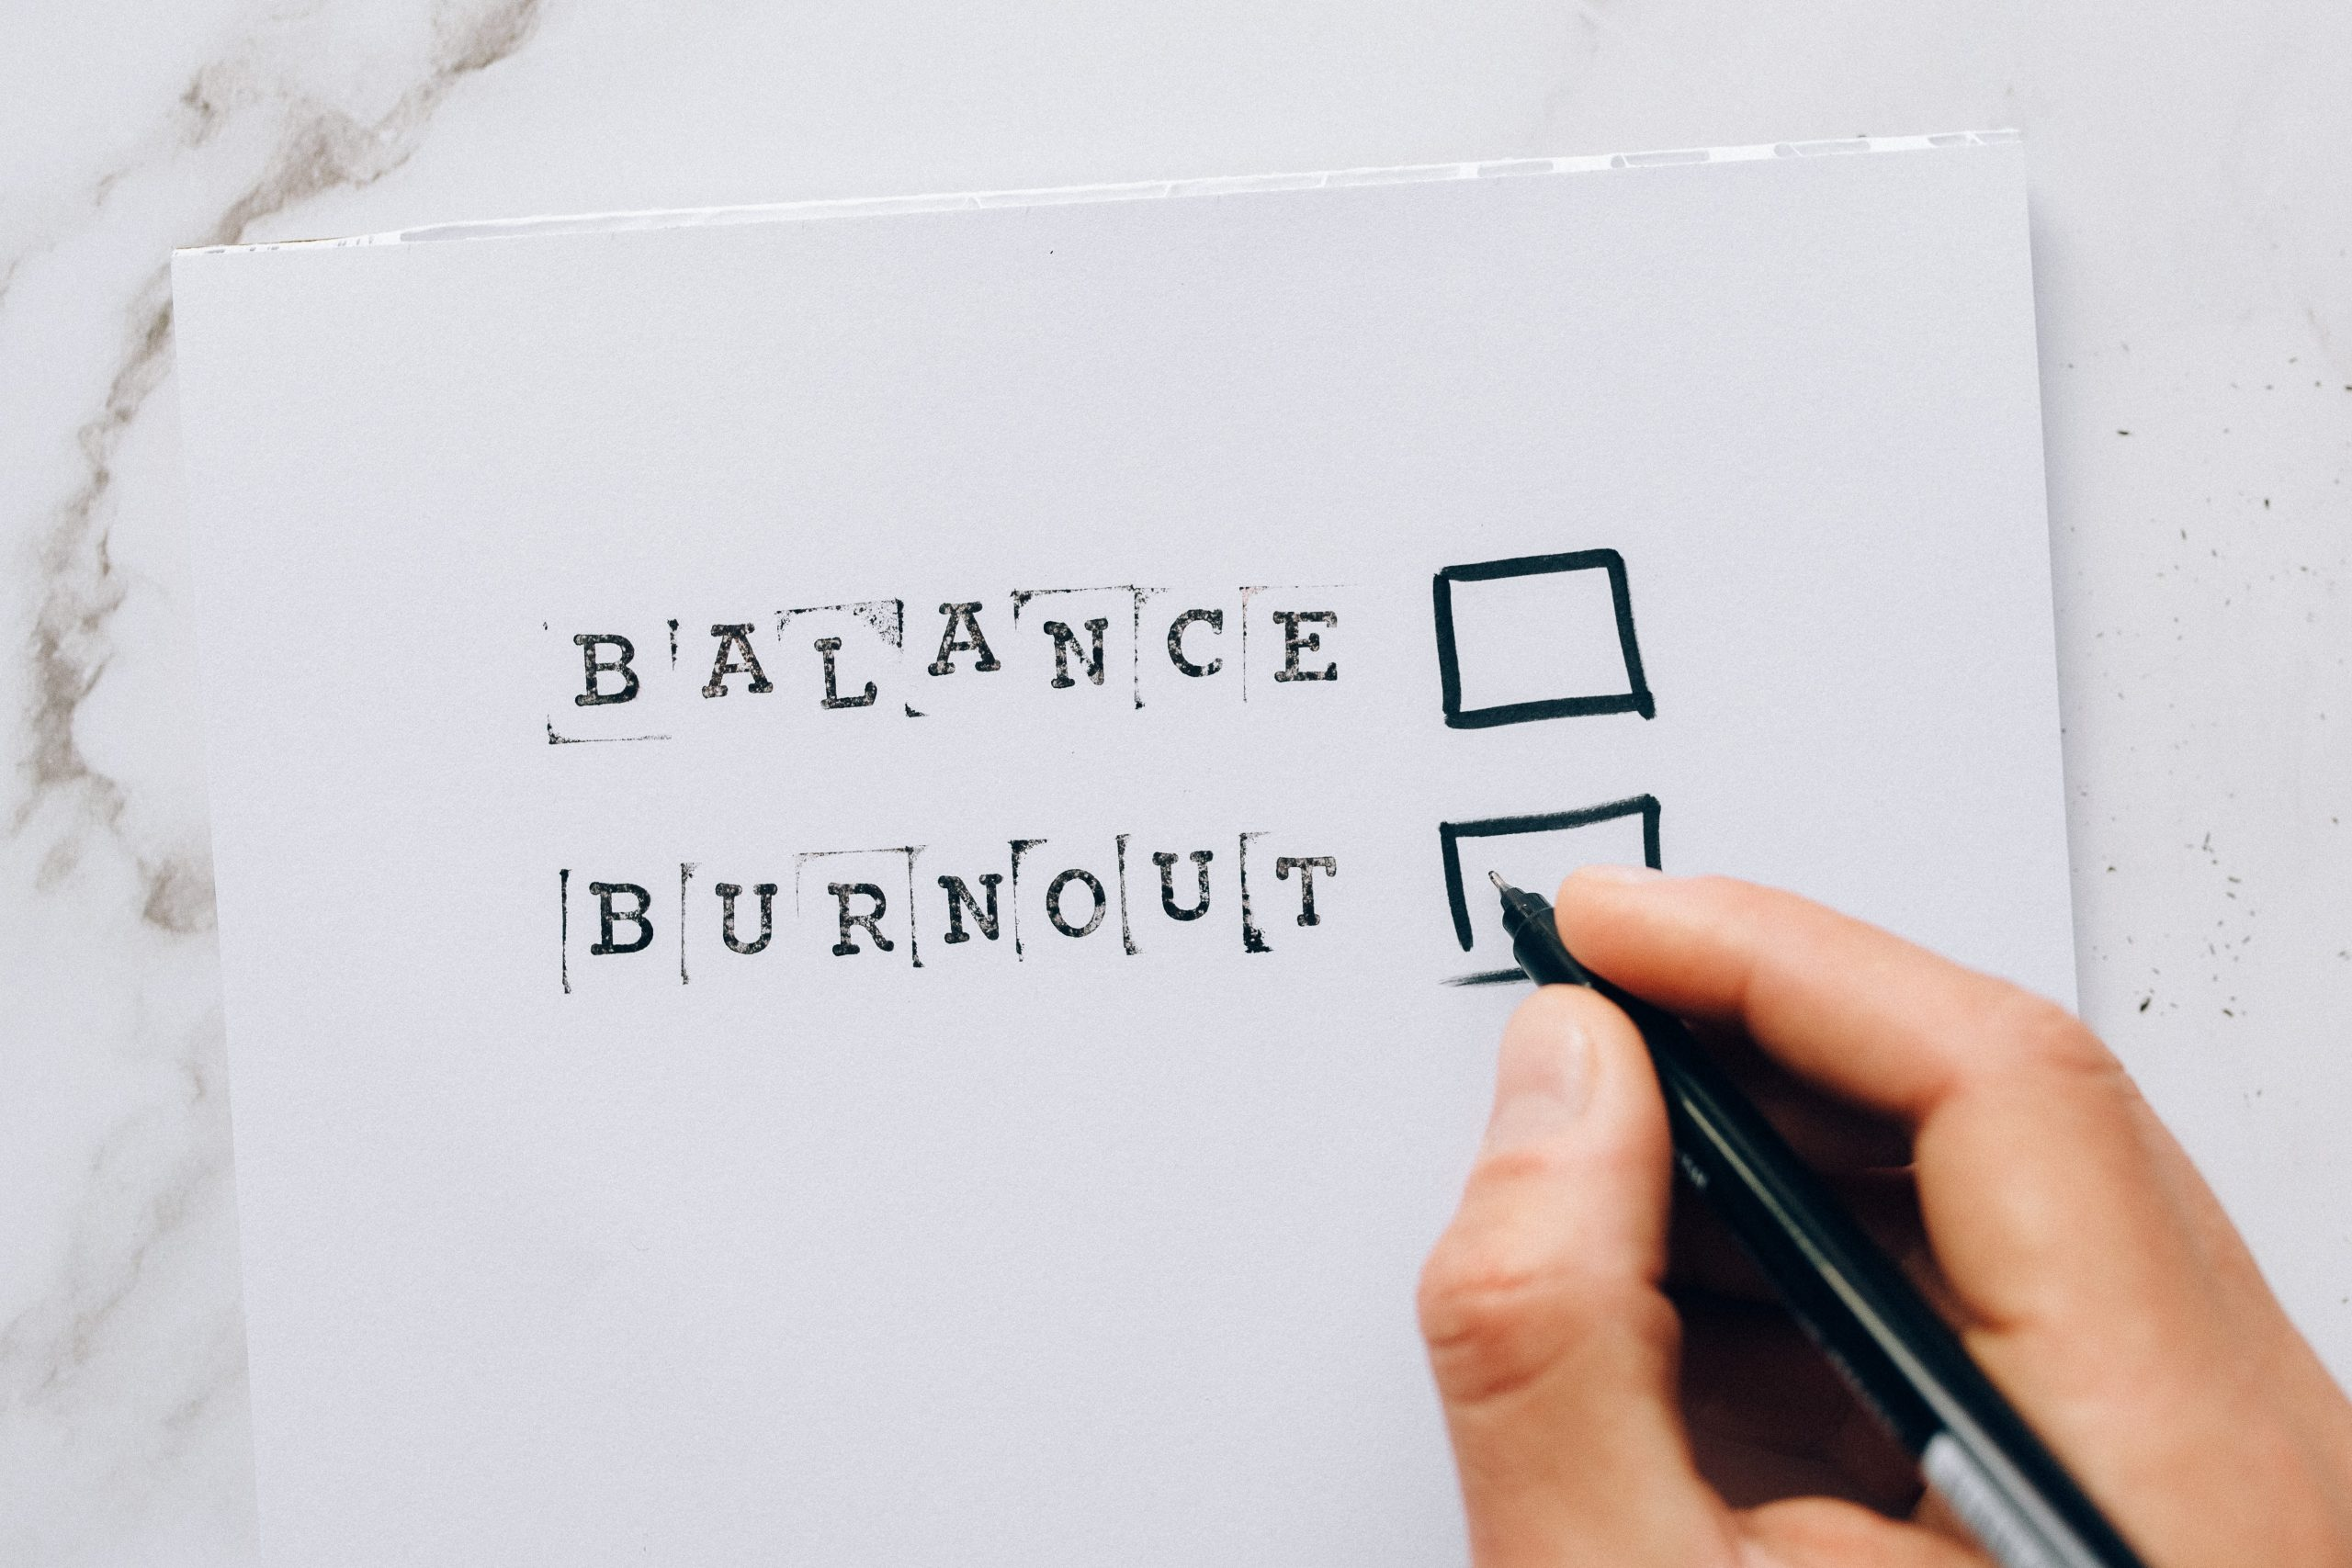 From Burnout to Balance: How to Manage Your Team After a Year of Really Hard Work